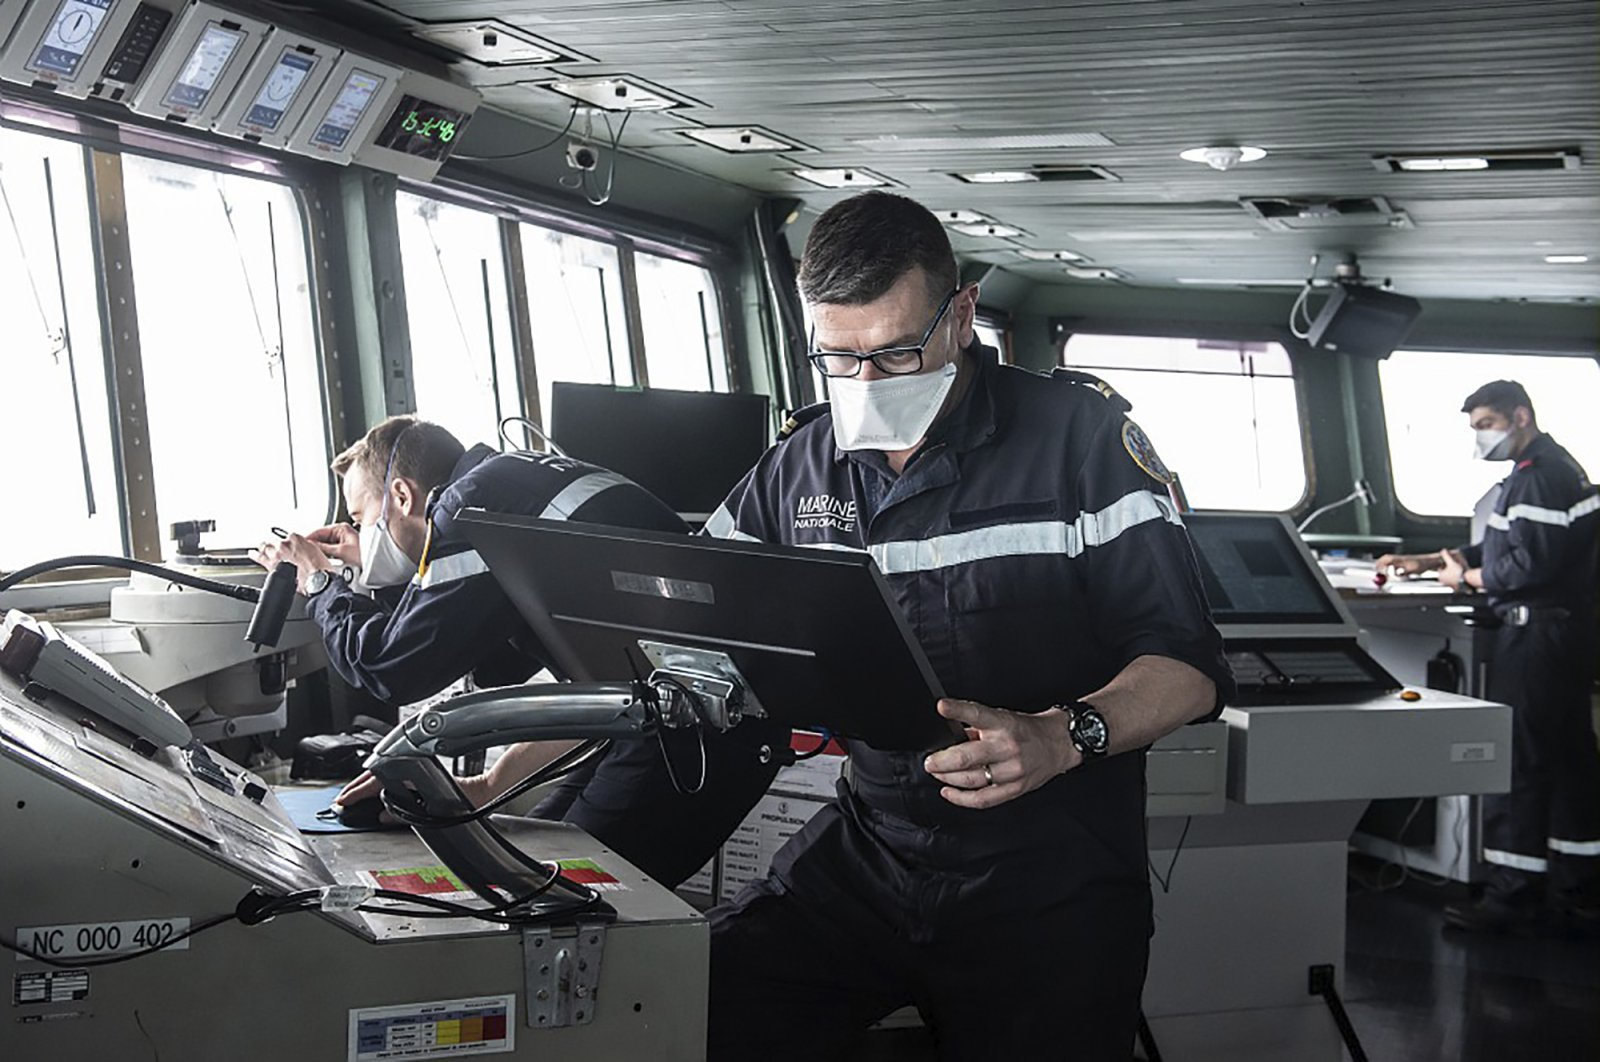 Sailors wear face masks aboard the French aircraft carrier Charles de Gaulle, in the Atlantic Ocean, April 8, 2020. (AP Photo from the French Navy)